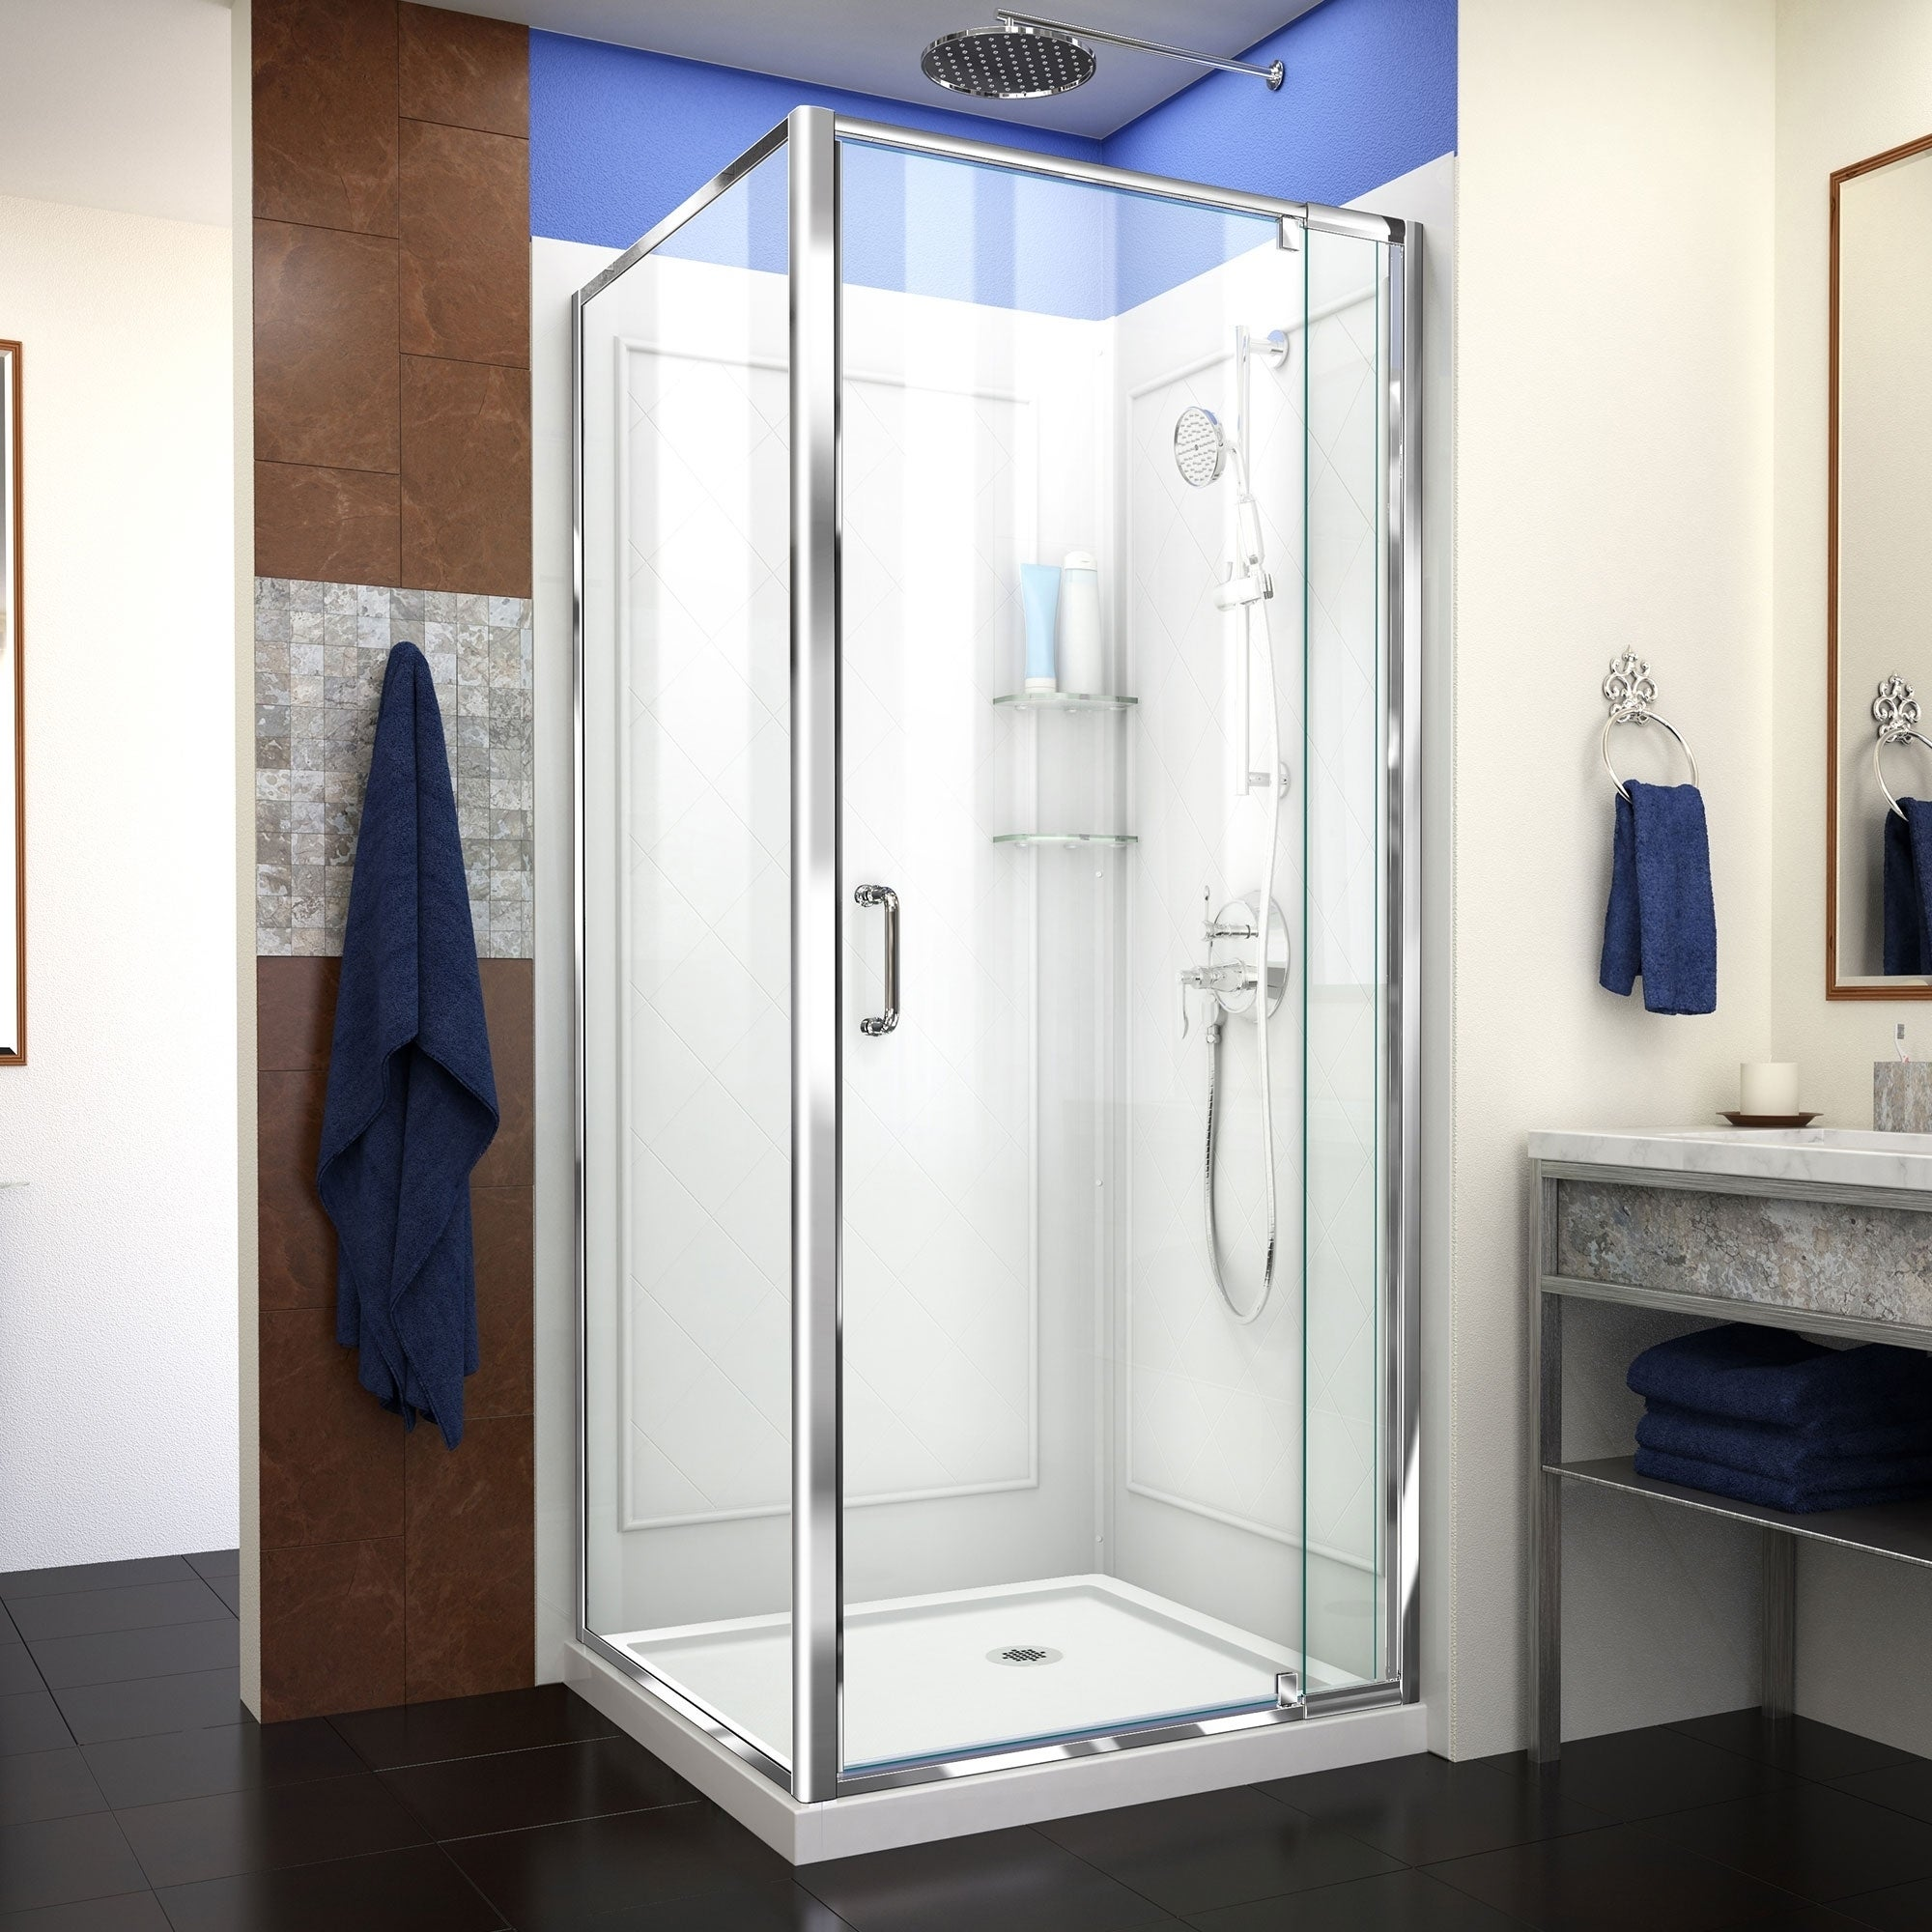 Buy 36 x 36 Shower Stalls & Kits Online at Overstock.com   Our Best ...